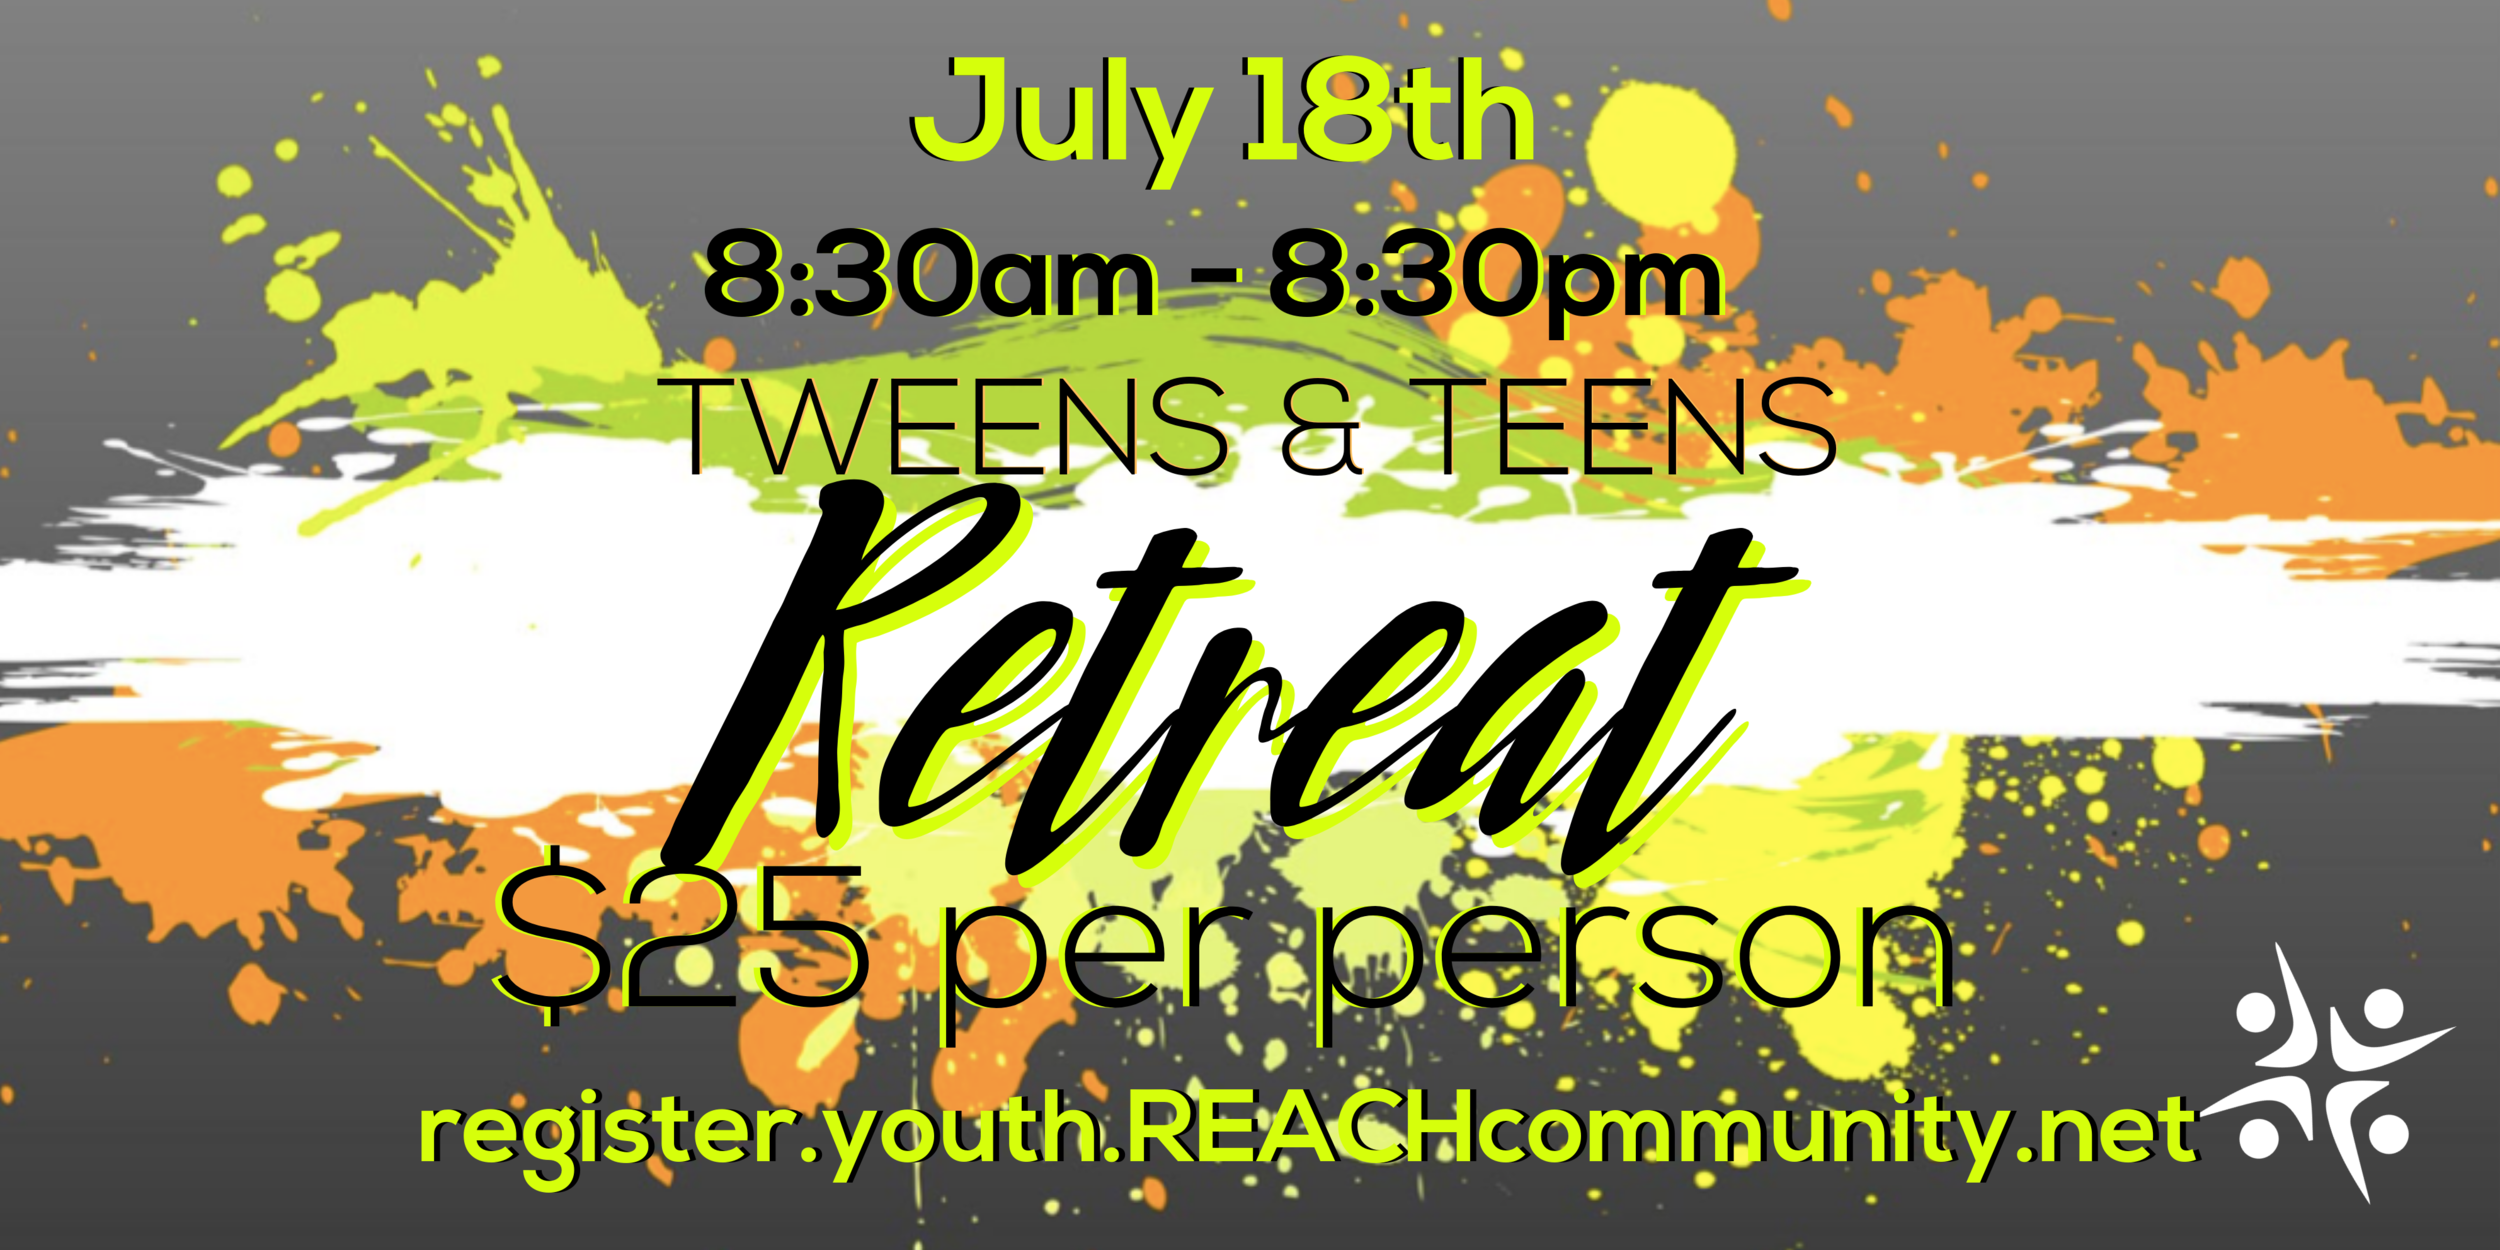 REACH Community Youth Day Retreat July 18 2019 kayaking breakfast lunch worship